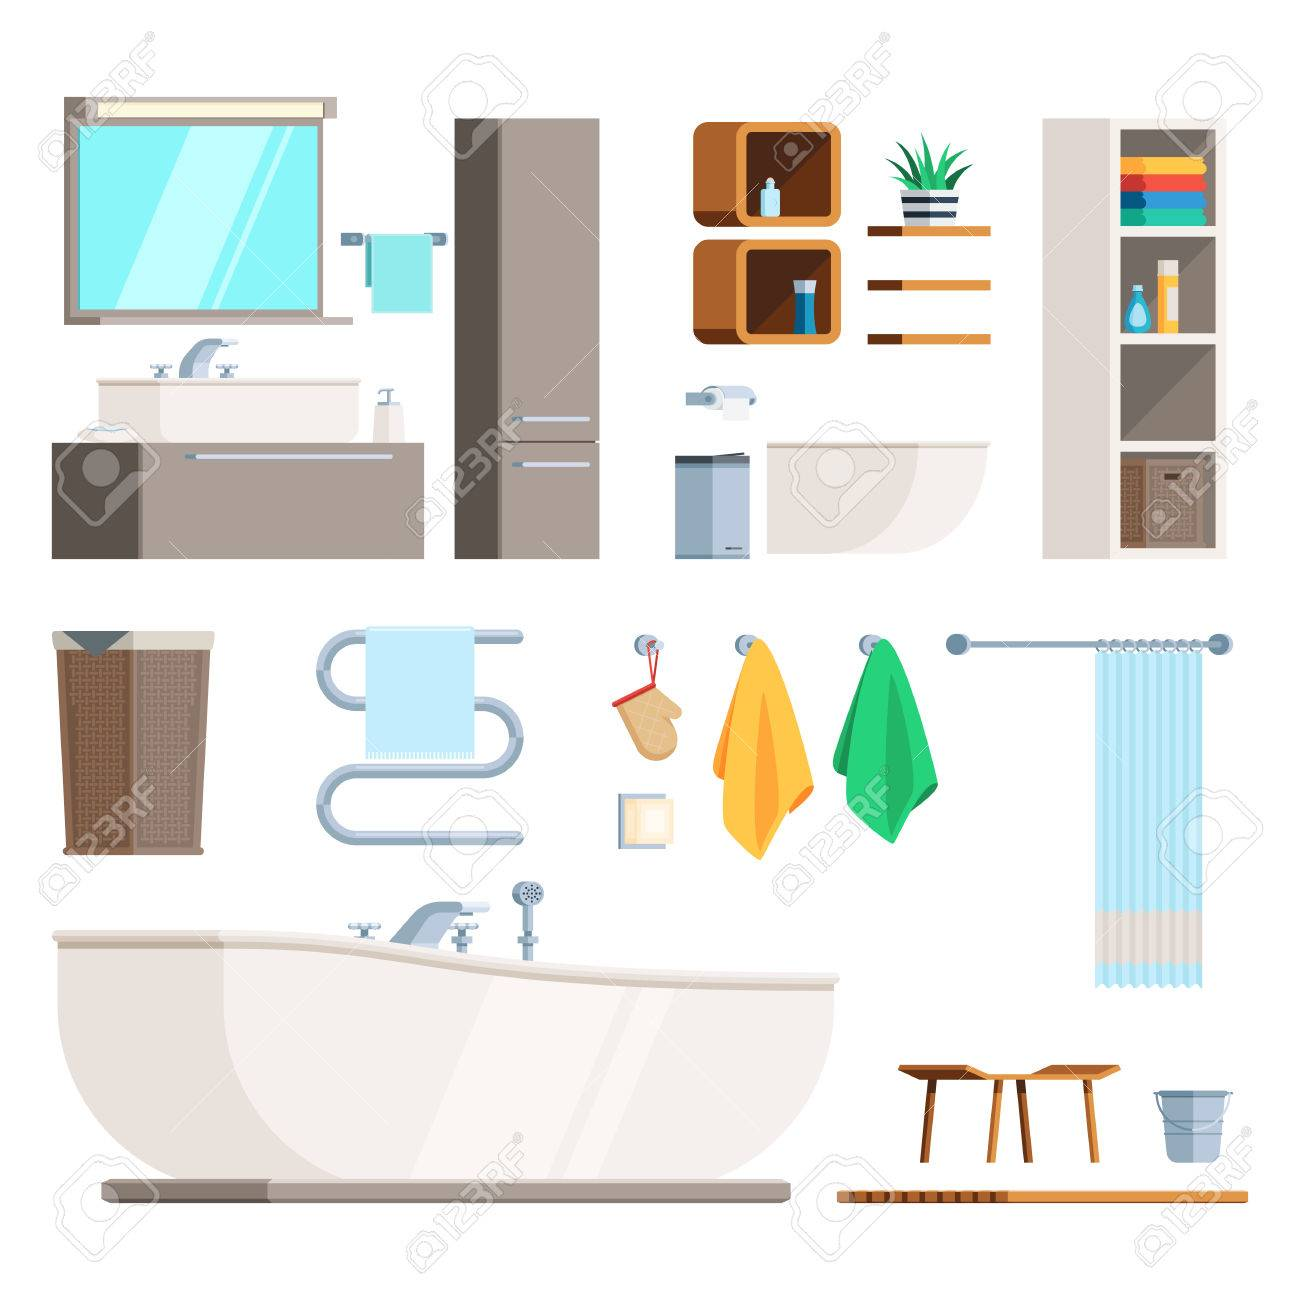 Bathroom Furniture And Equipment Set. A Template To Create A ...